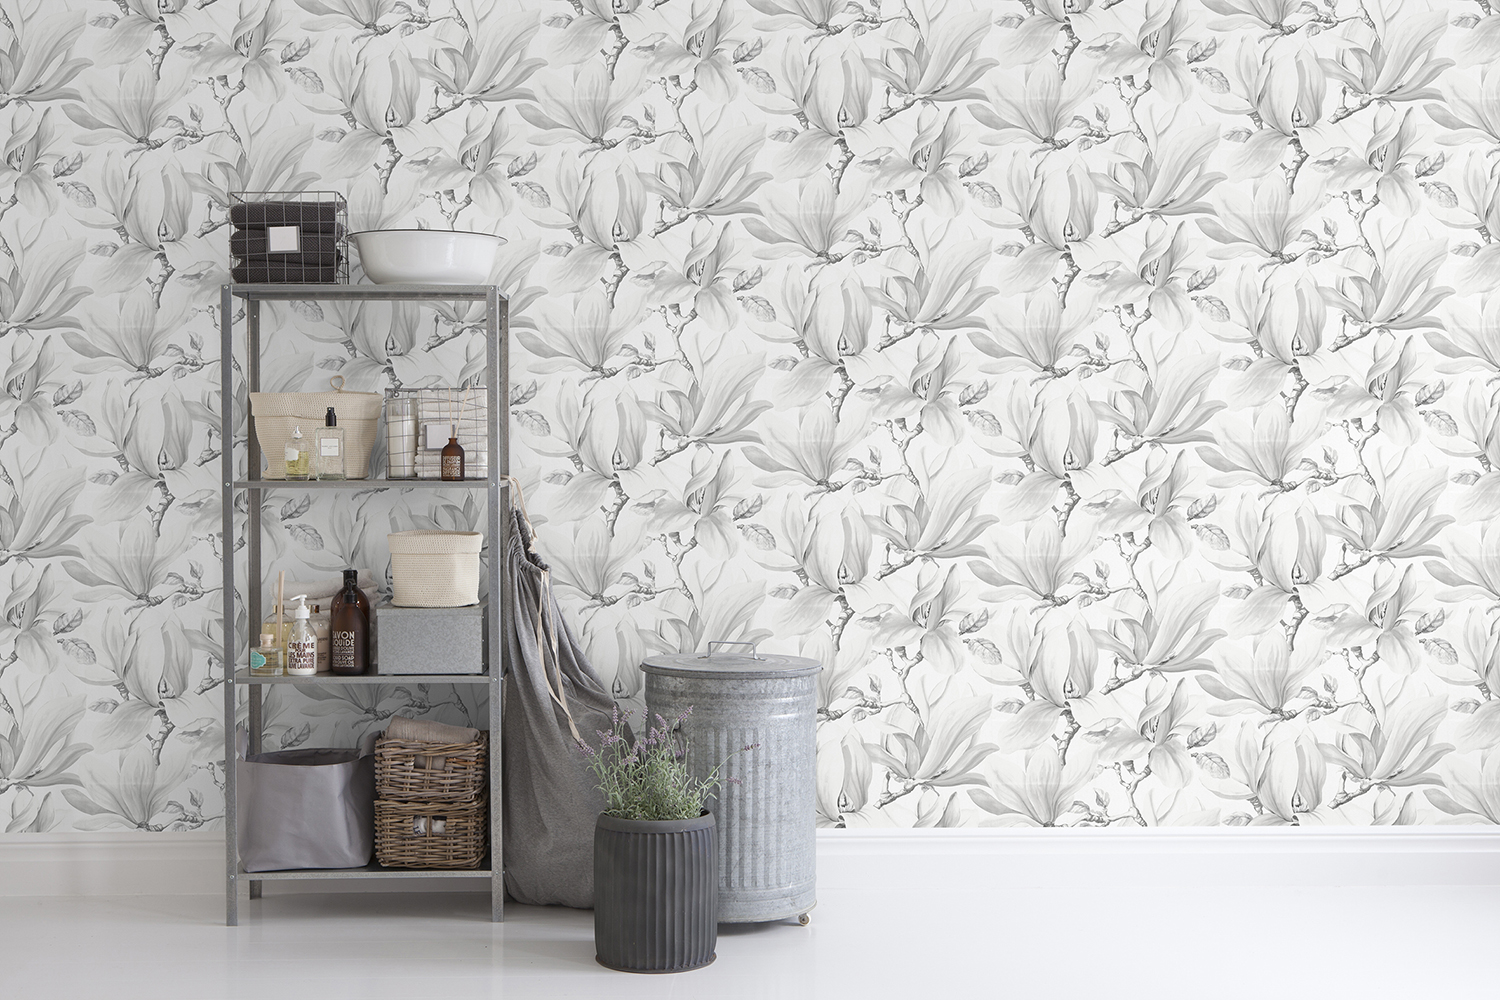 magnolia grey decor maison